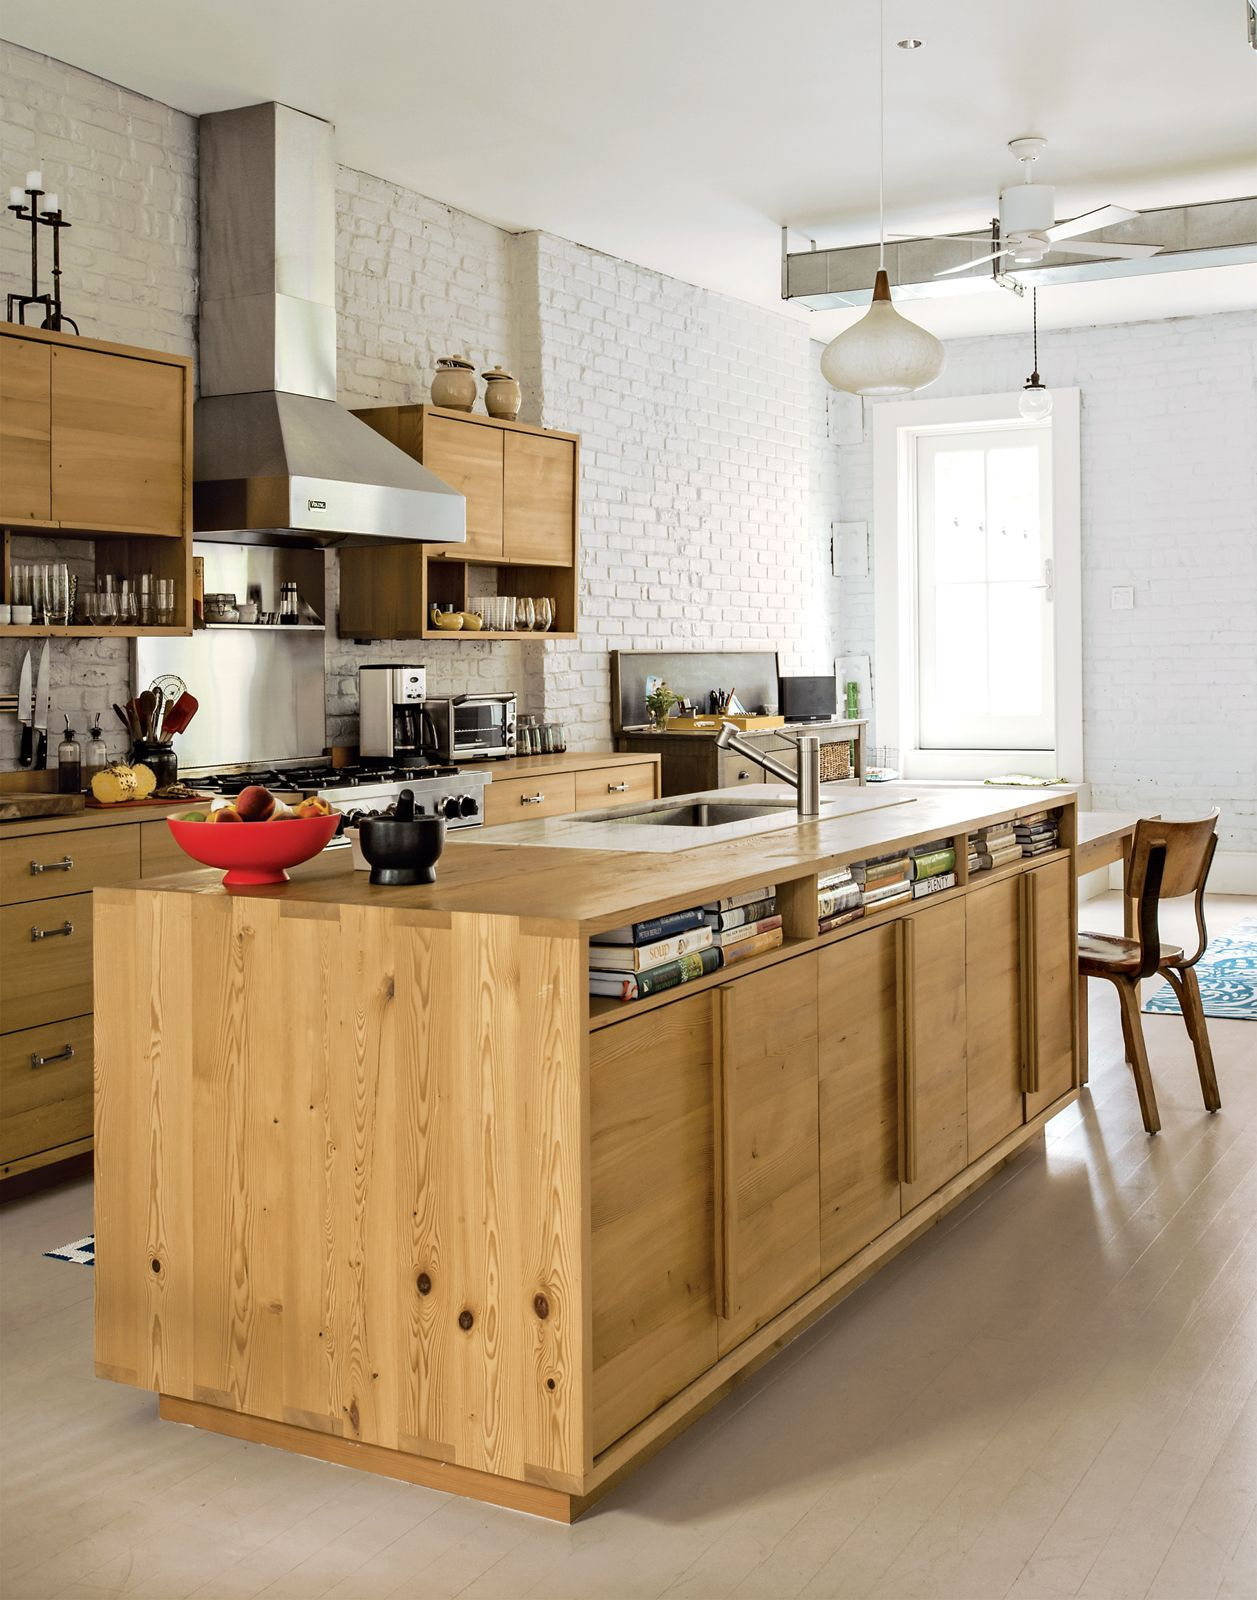 A Budget Friendly Brownstone Renovation In Brooklyn Comfortable Kitchen Kitchen Inspirations Space Saving Kitchen